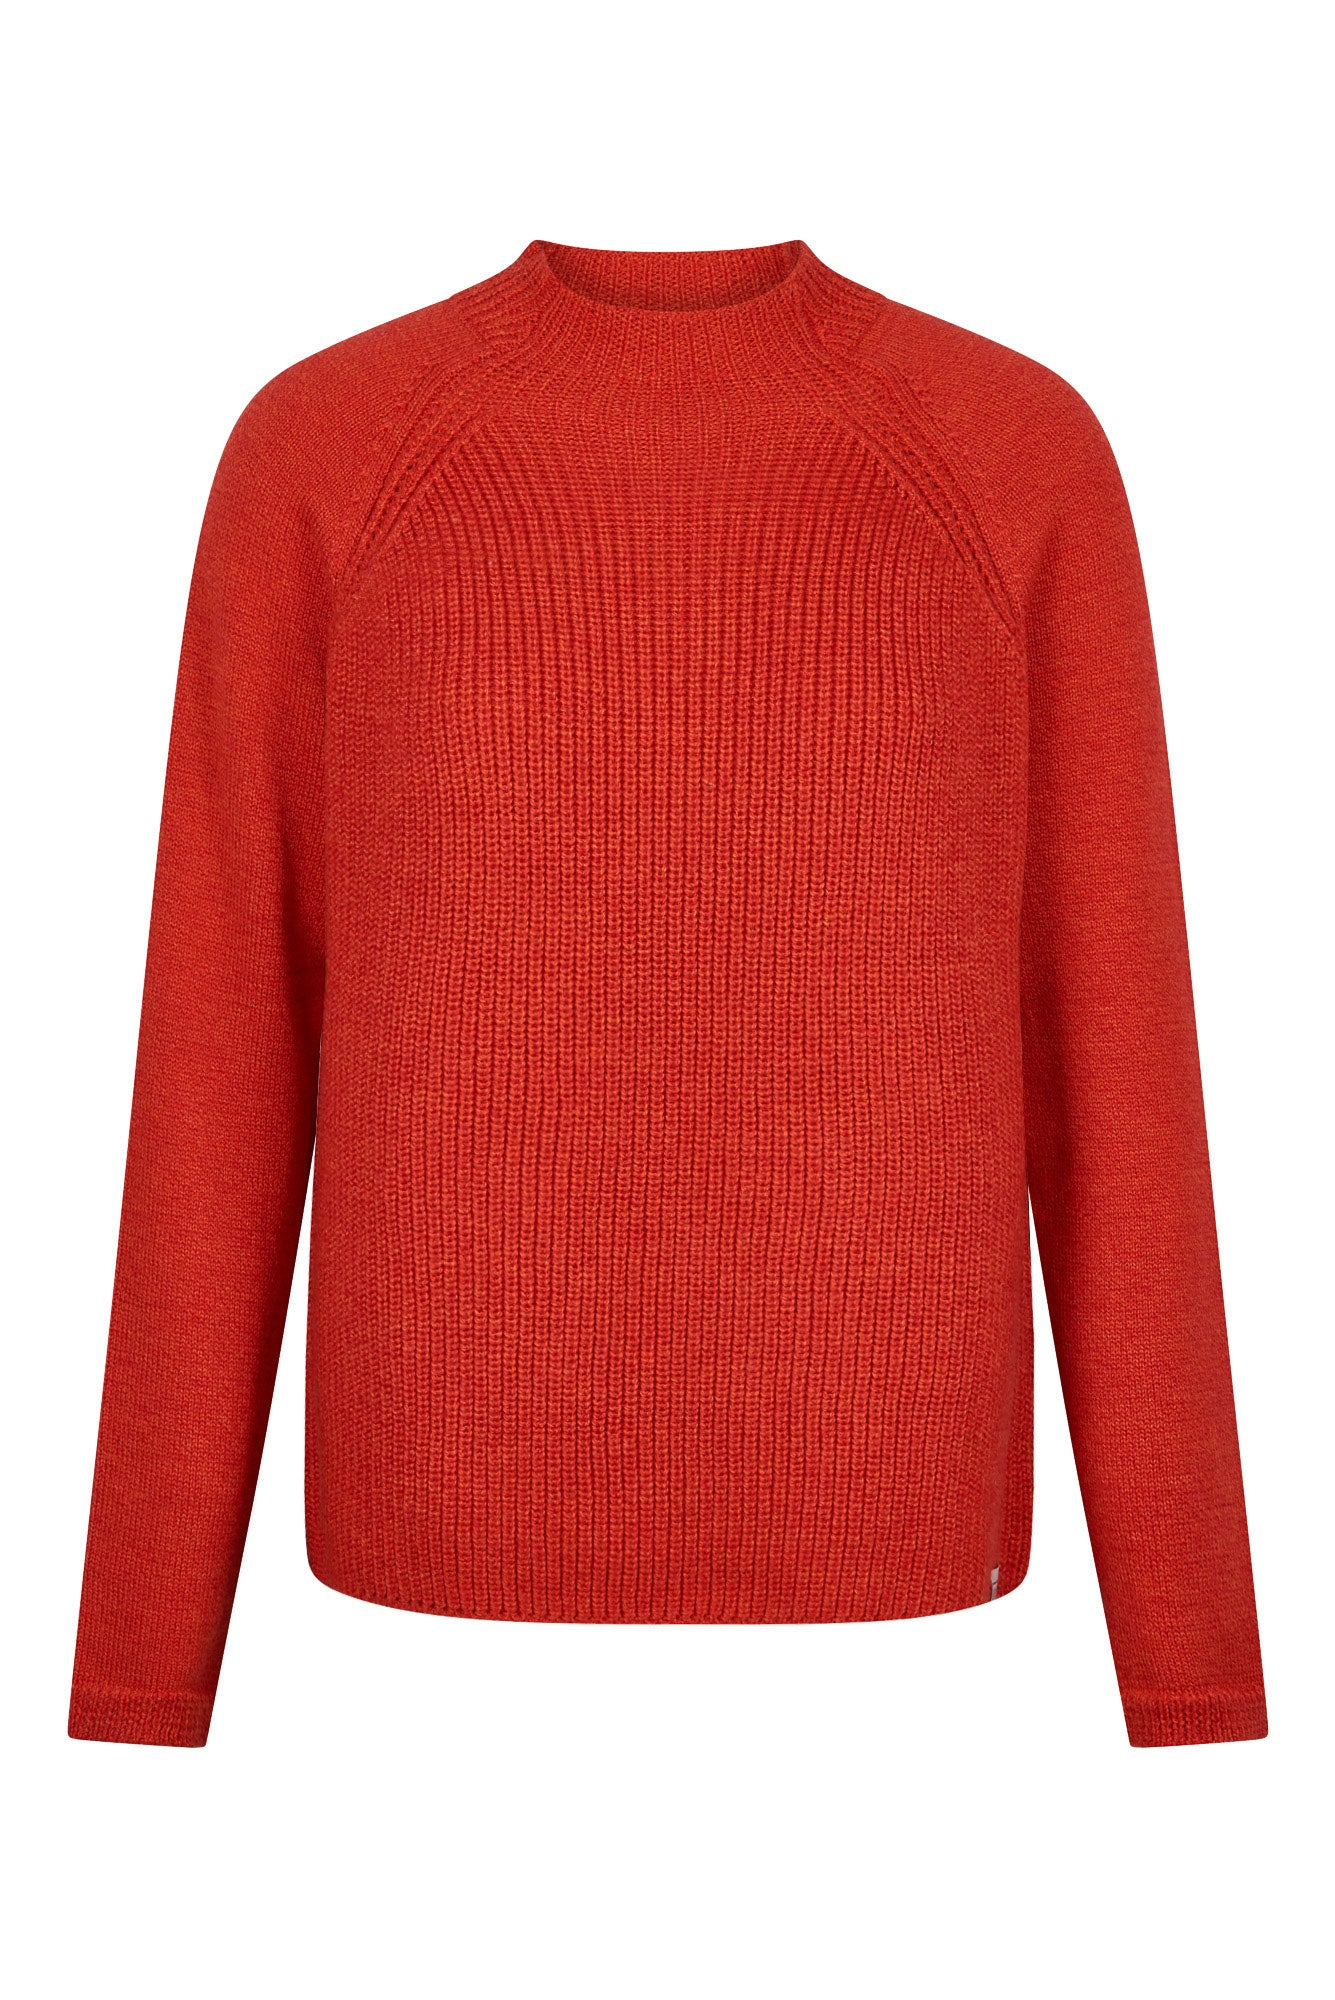 KATTY Merino Jumper Koi Red